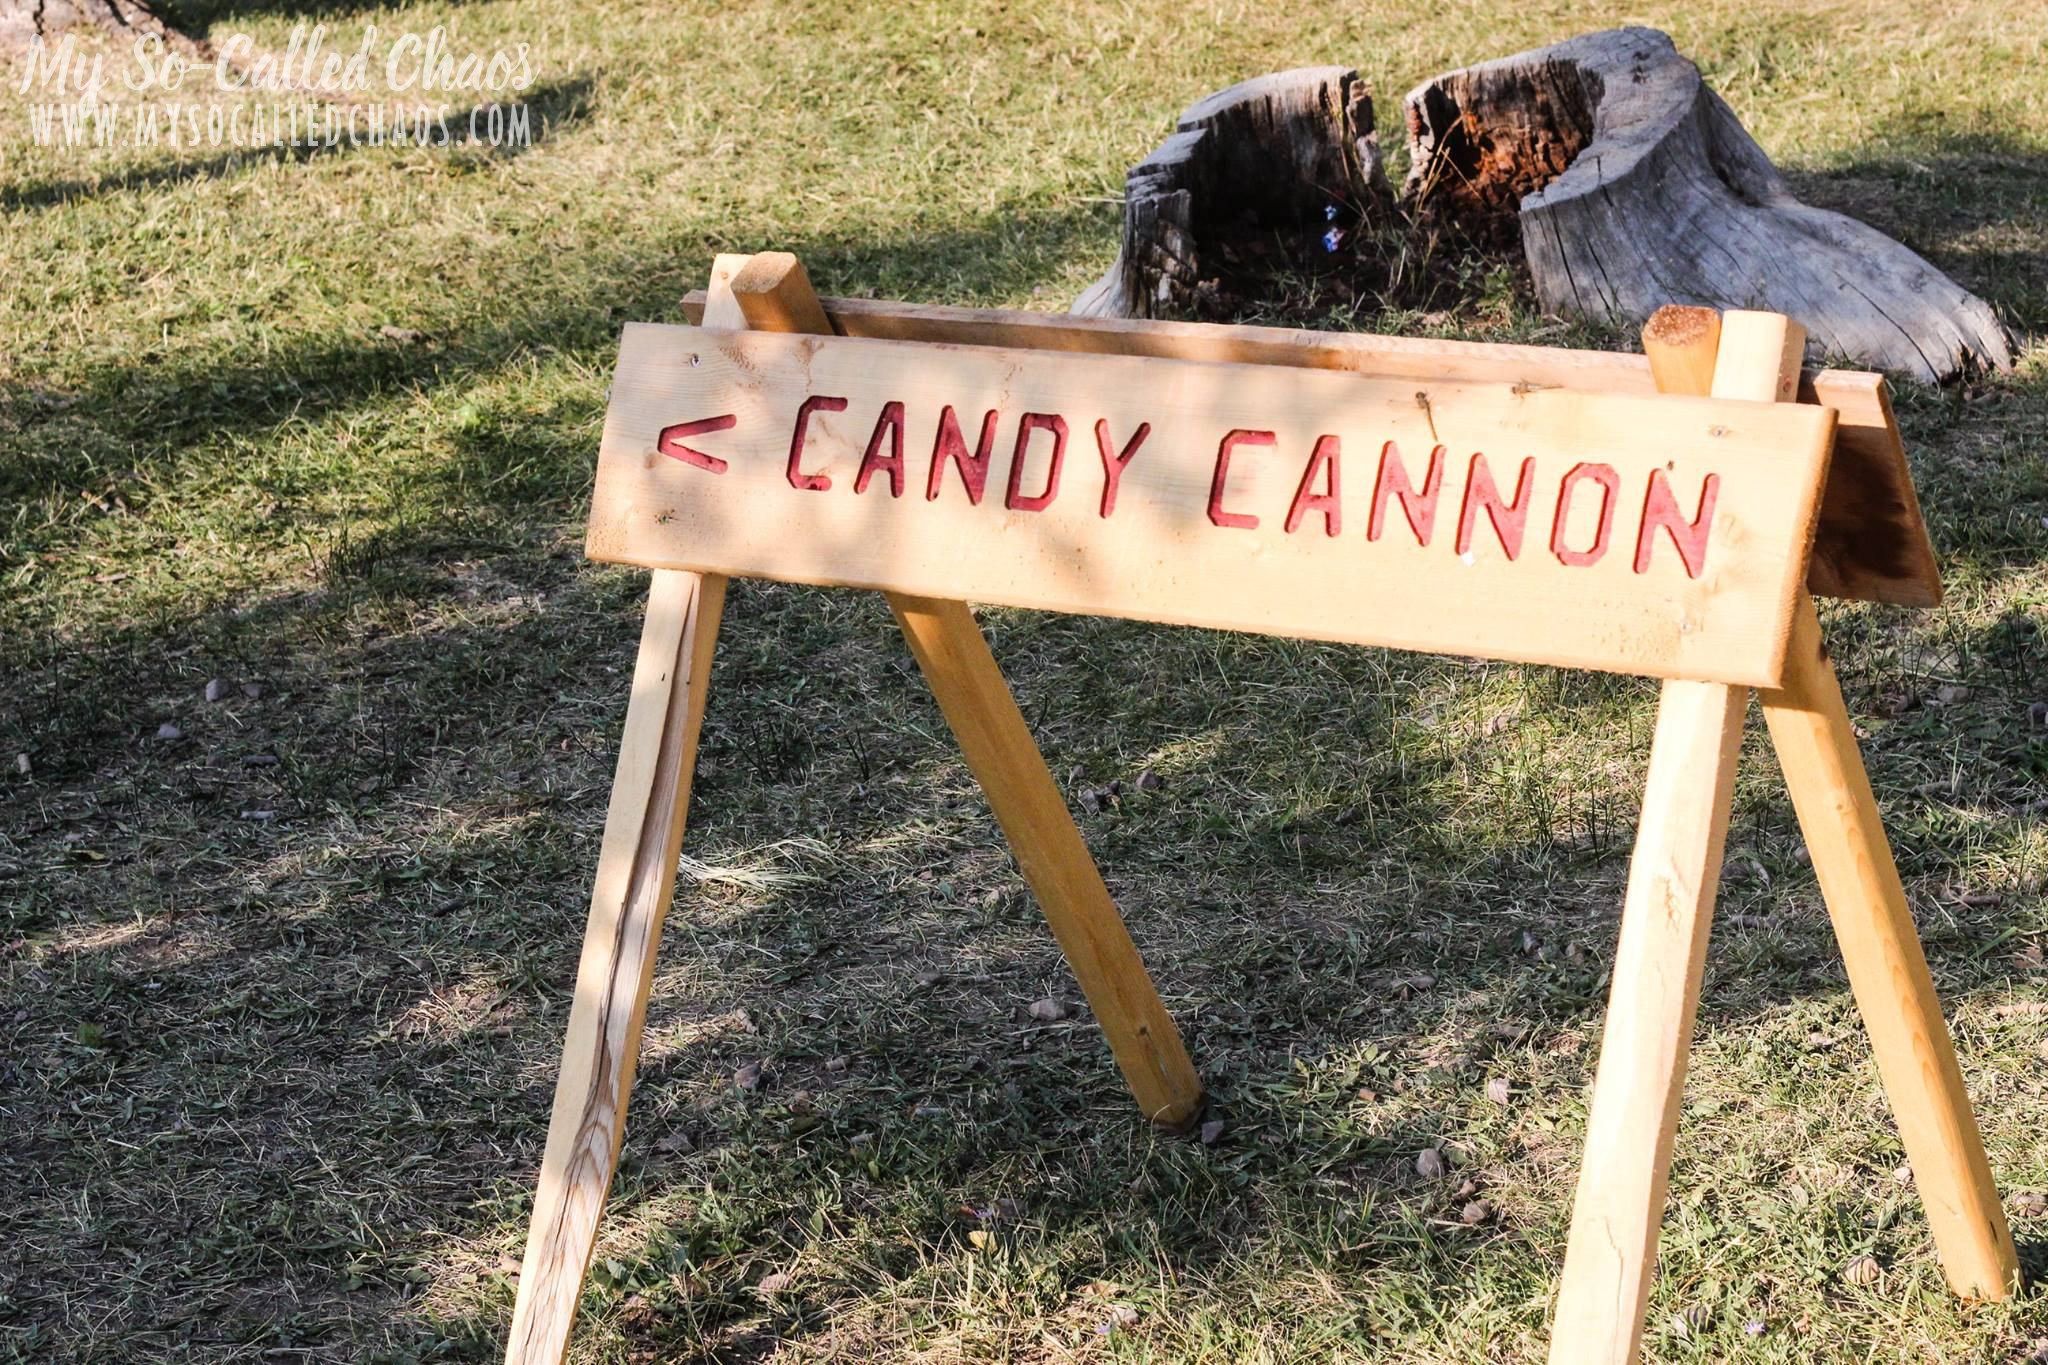 Fort Bridger Rendezvous Candy Canon